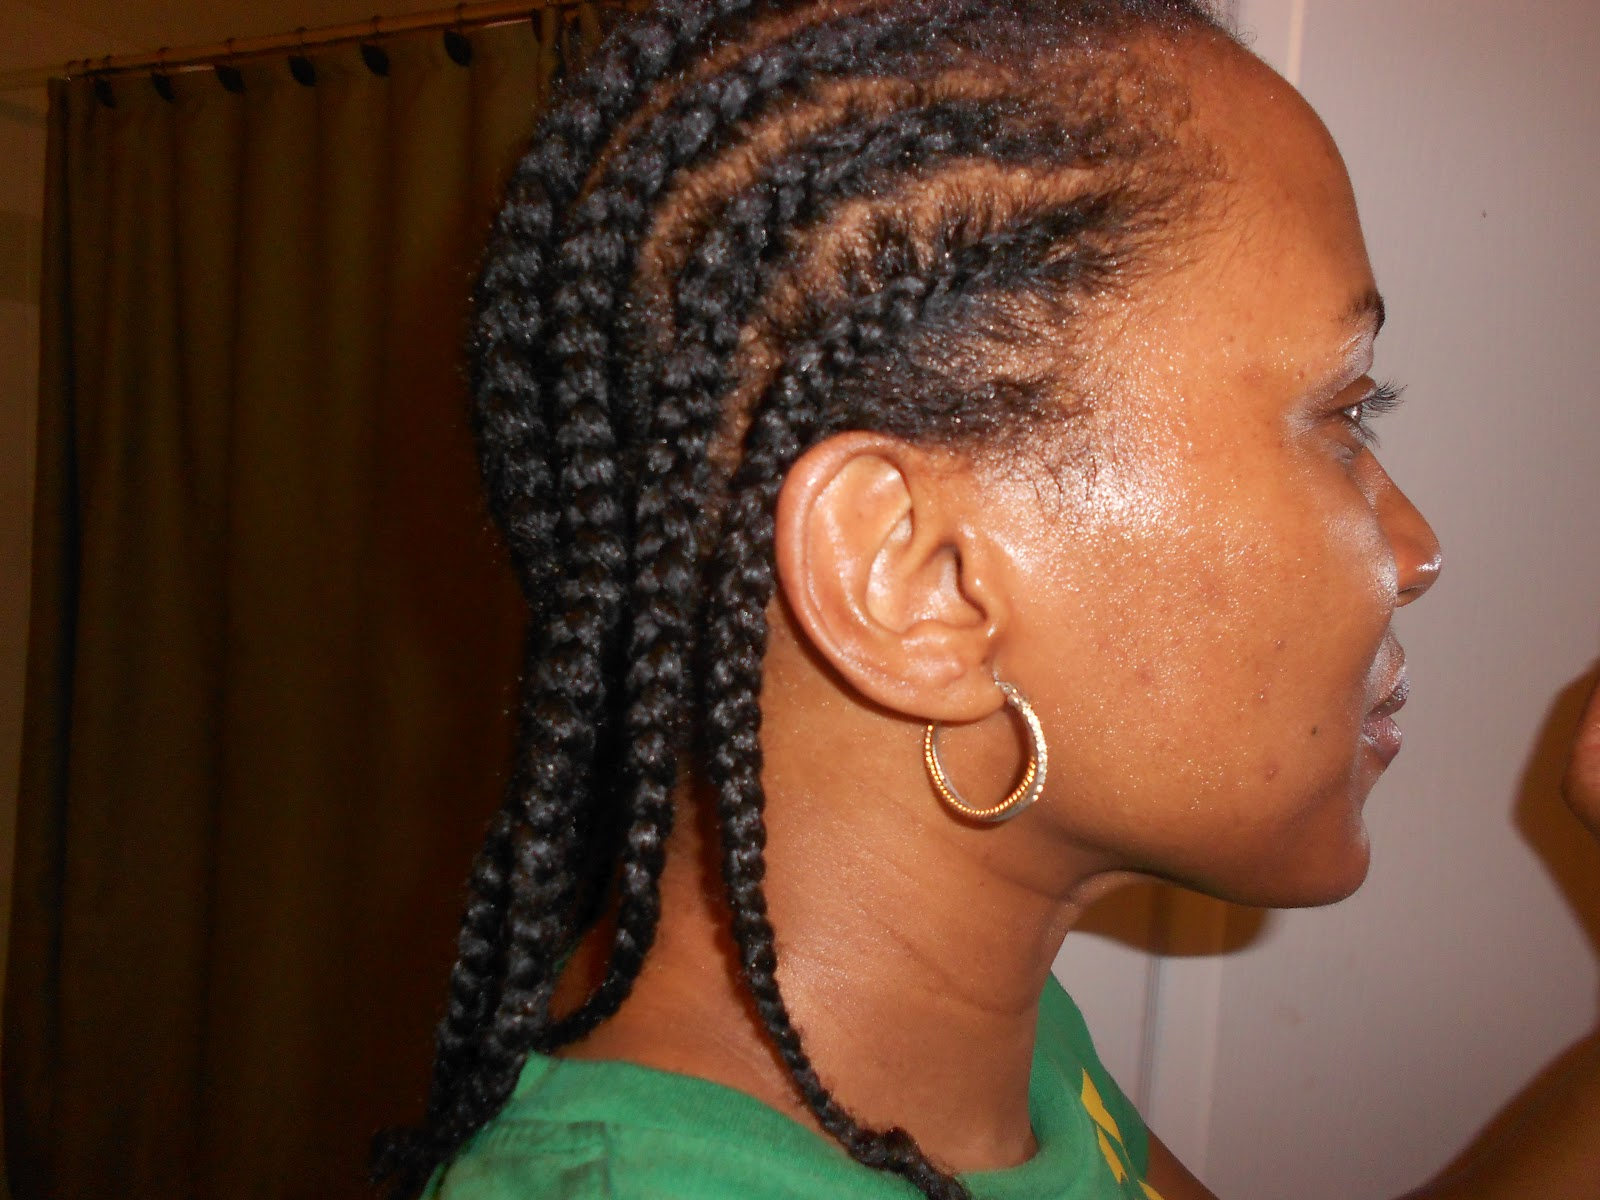 Quickest Crochet Braids : ... Not as quick as adding them to relaxed hair, but I got through it